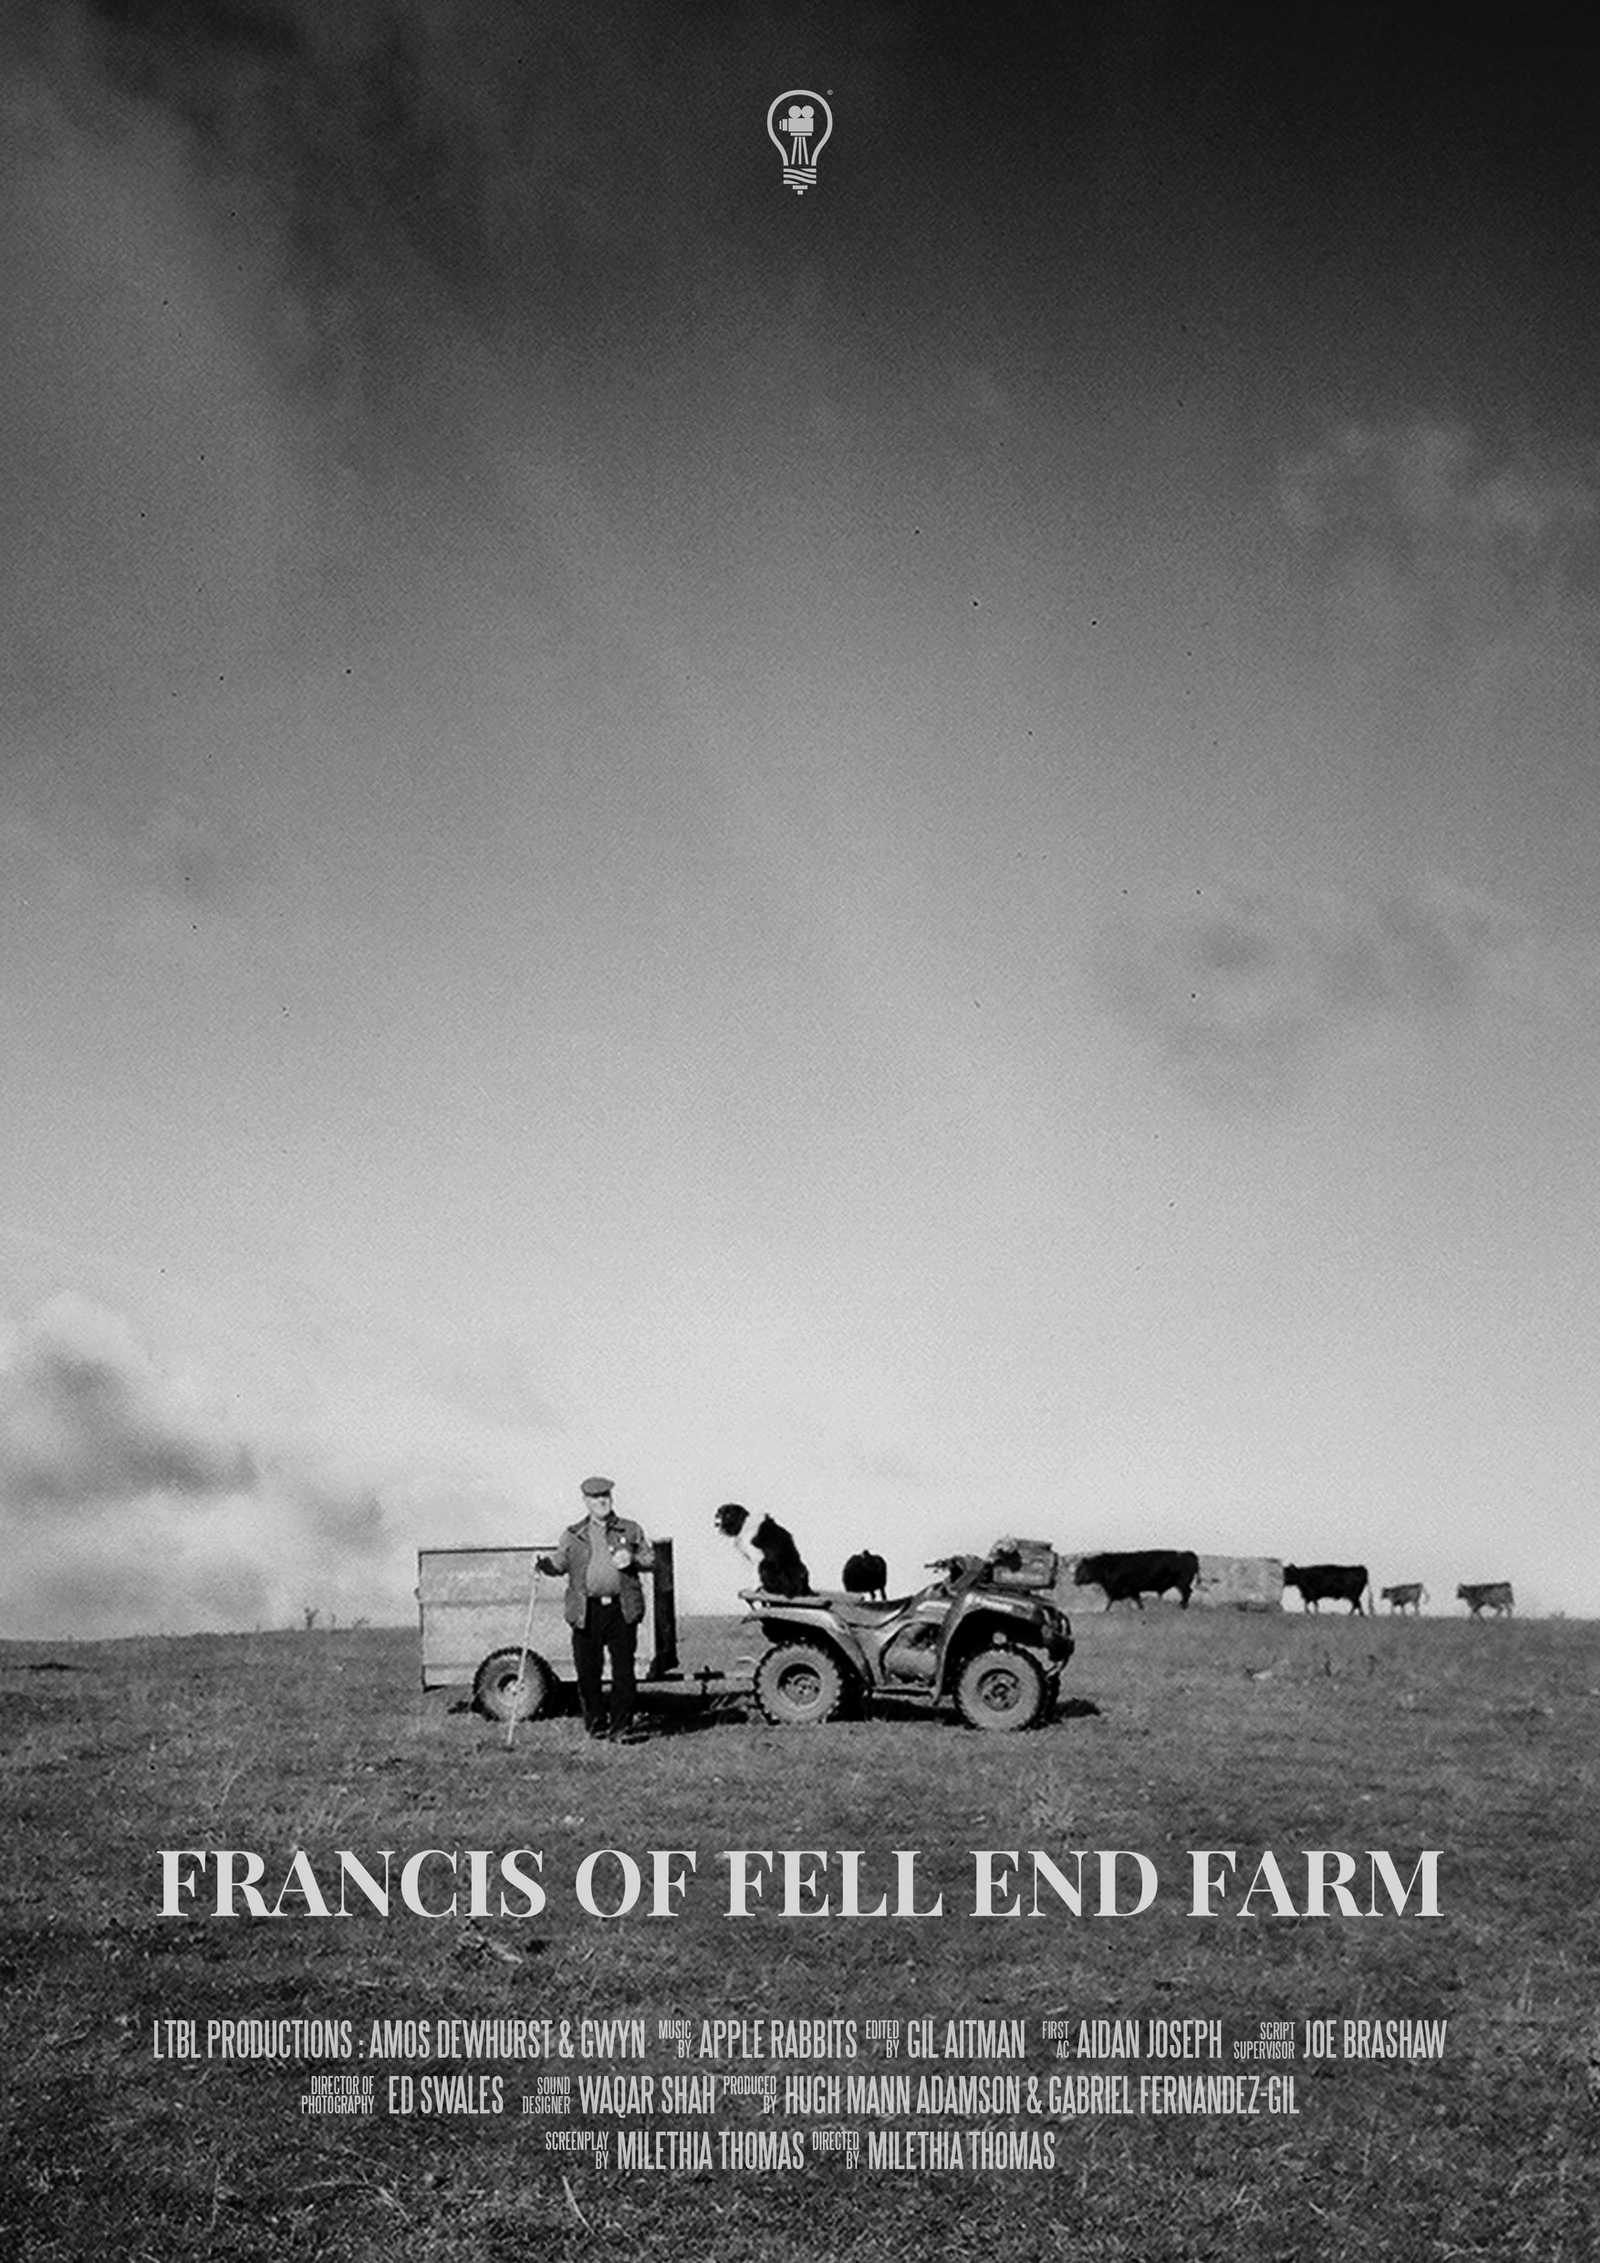 Francis of Fell End Farm